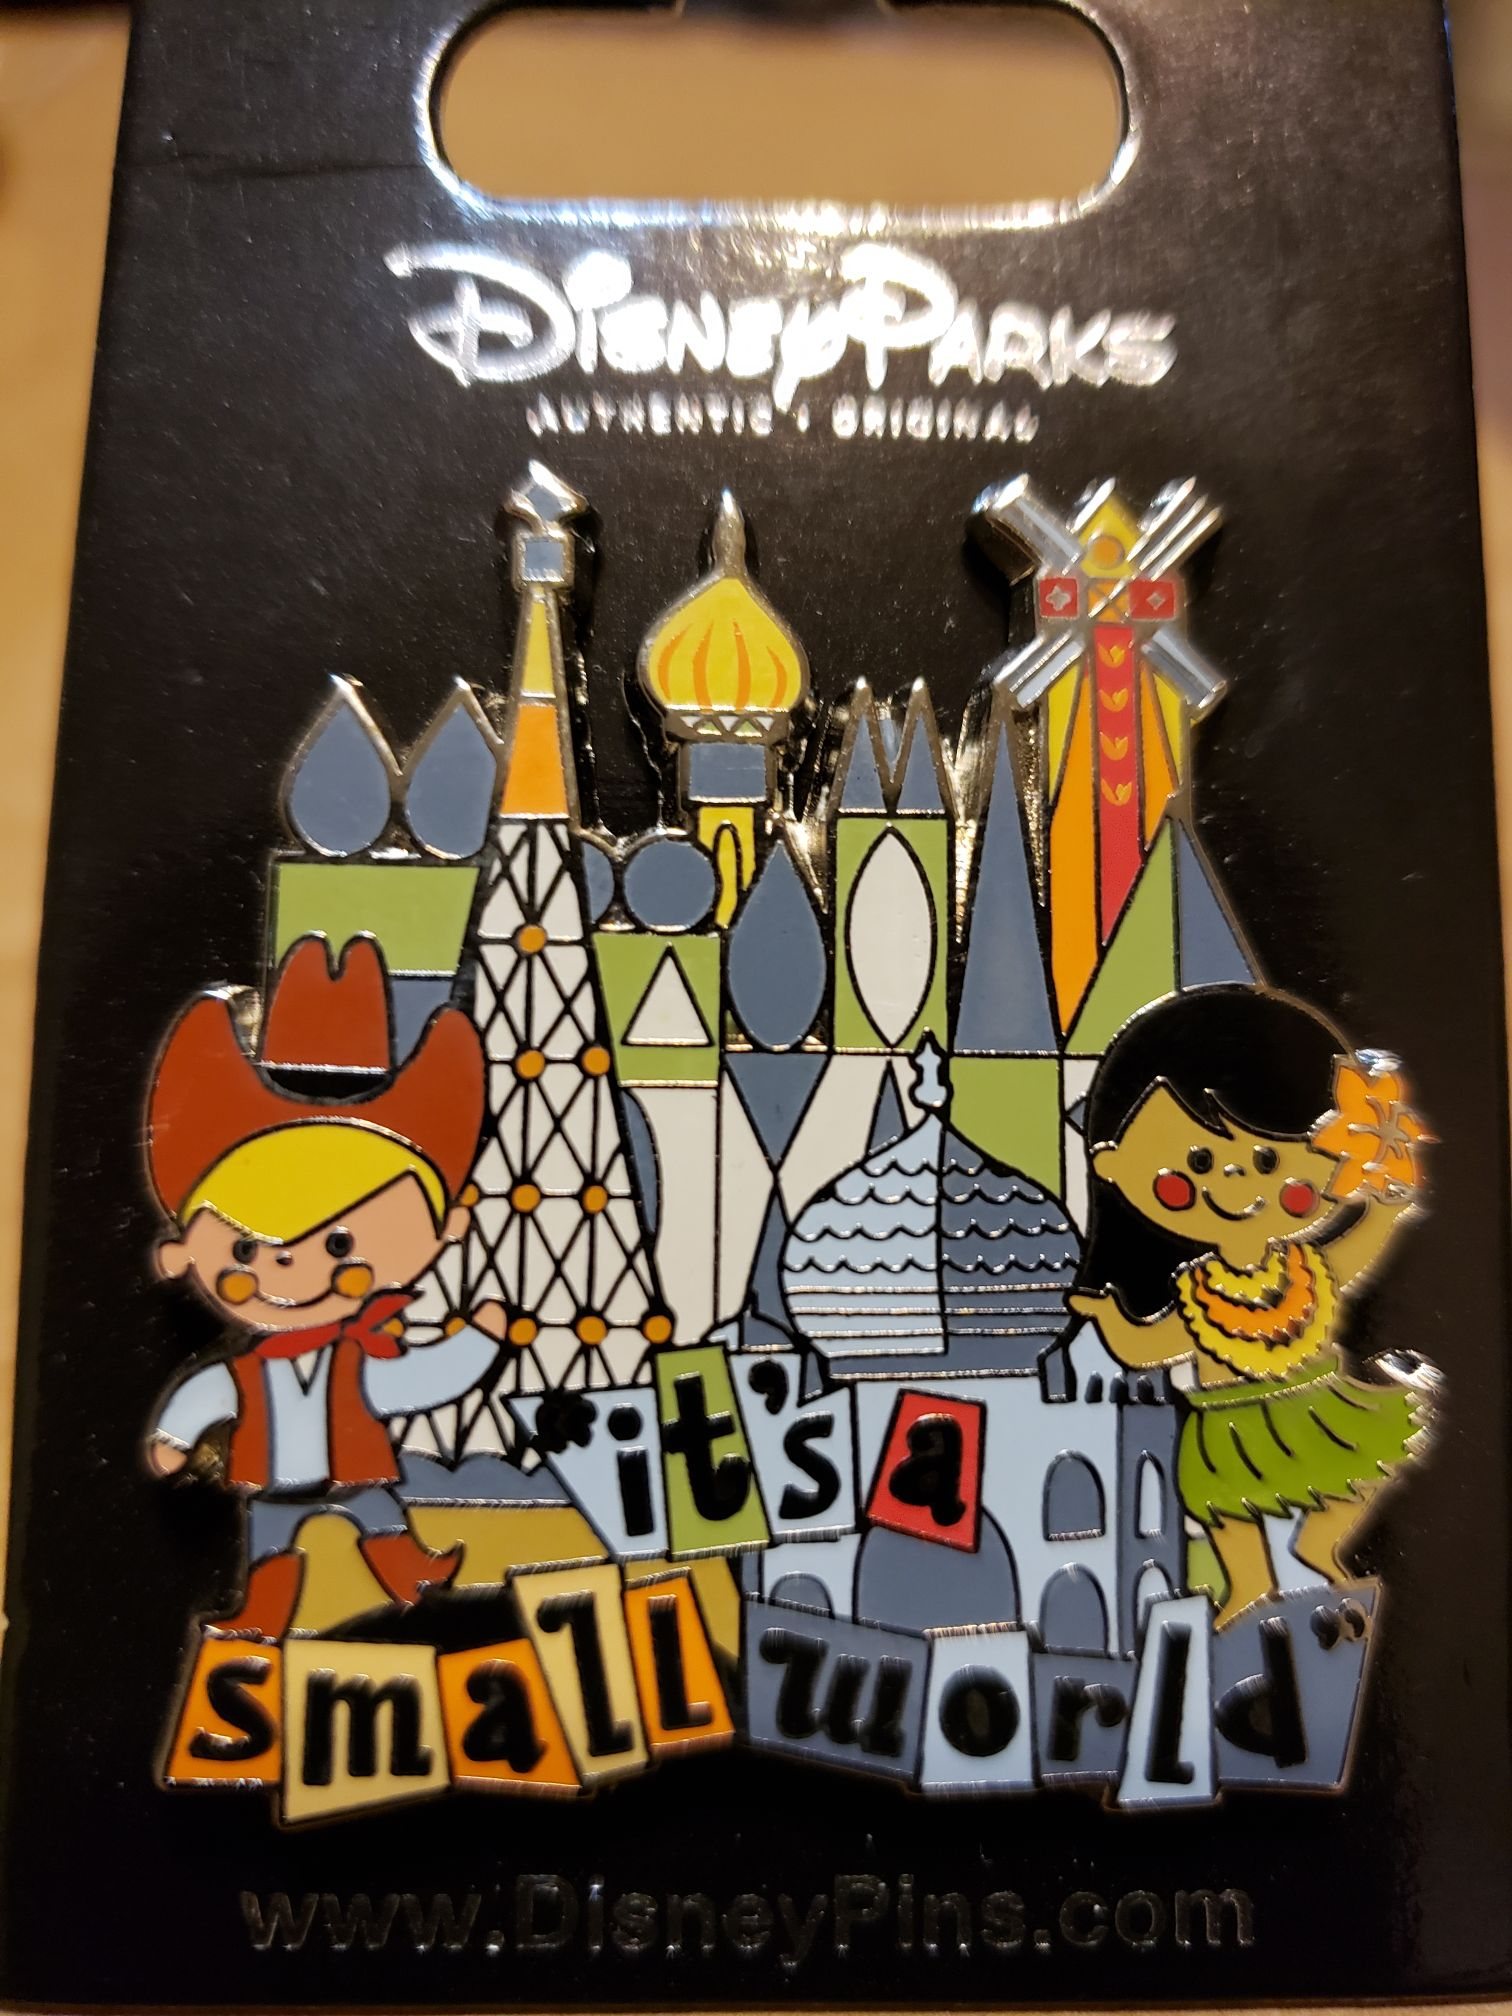 Disney it's a small world Disneypin front image (front cover)